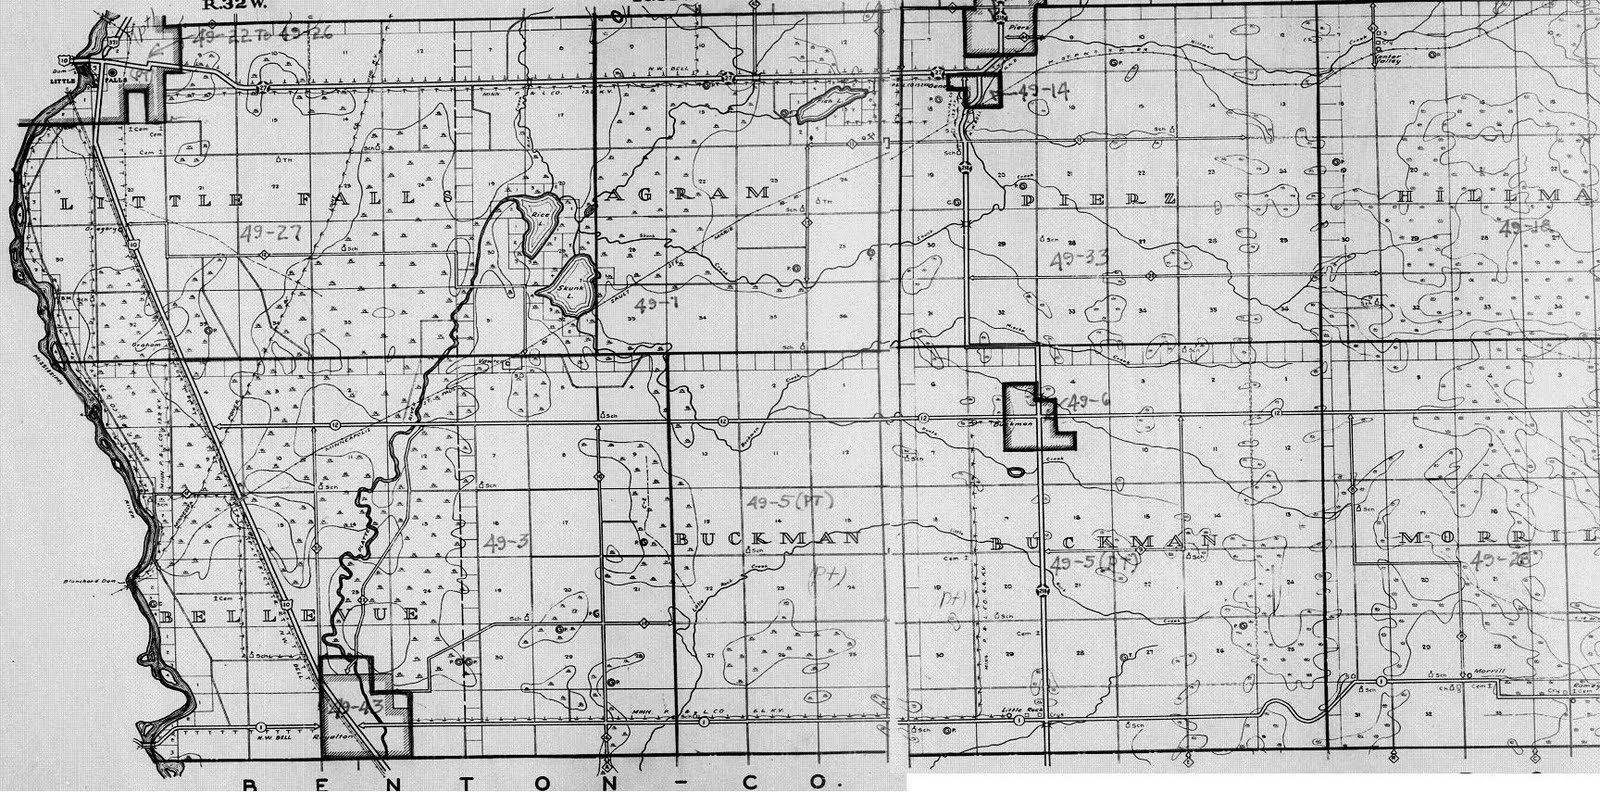 here s the map used by the census takers in 1940 tho no homes are marked just roads and physical features still those features seem different from what